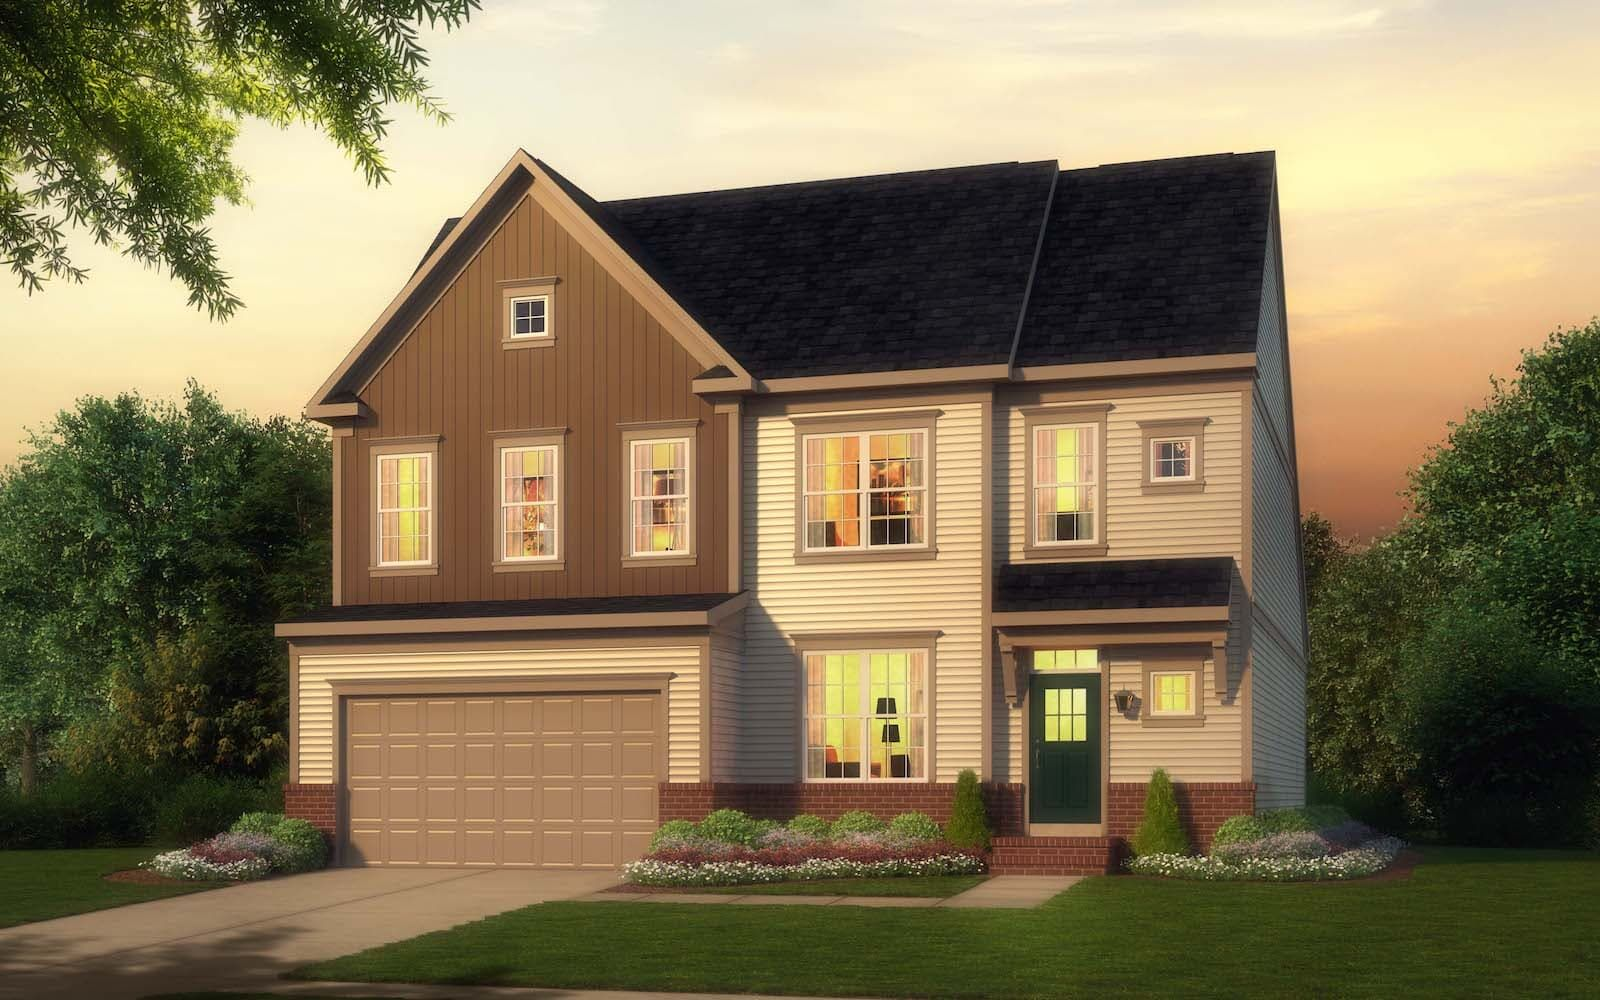 Exterior:Elevation 1 of the Cresswell a home design by Brookfield Residential at West Shore Village at The Bluffs at Sleeter Lake.